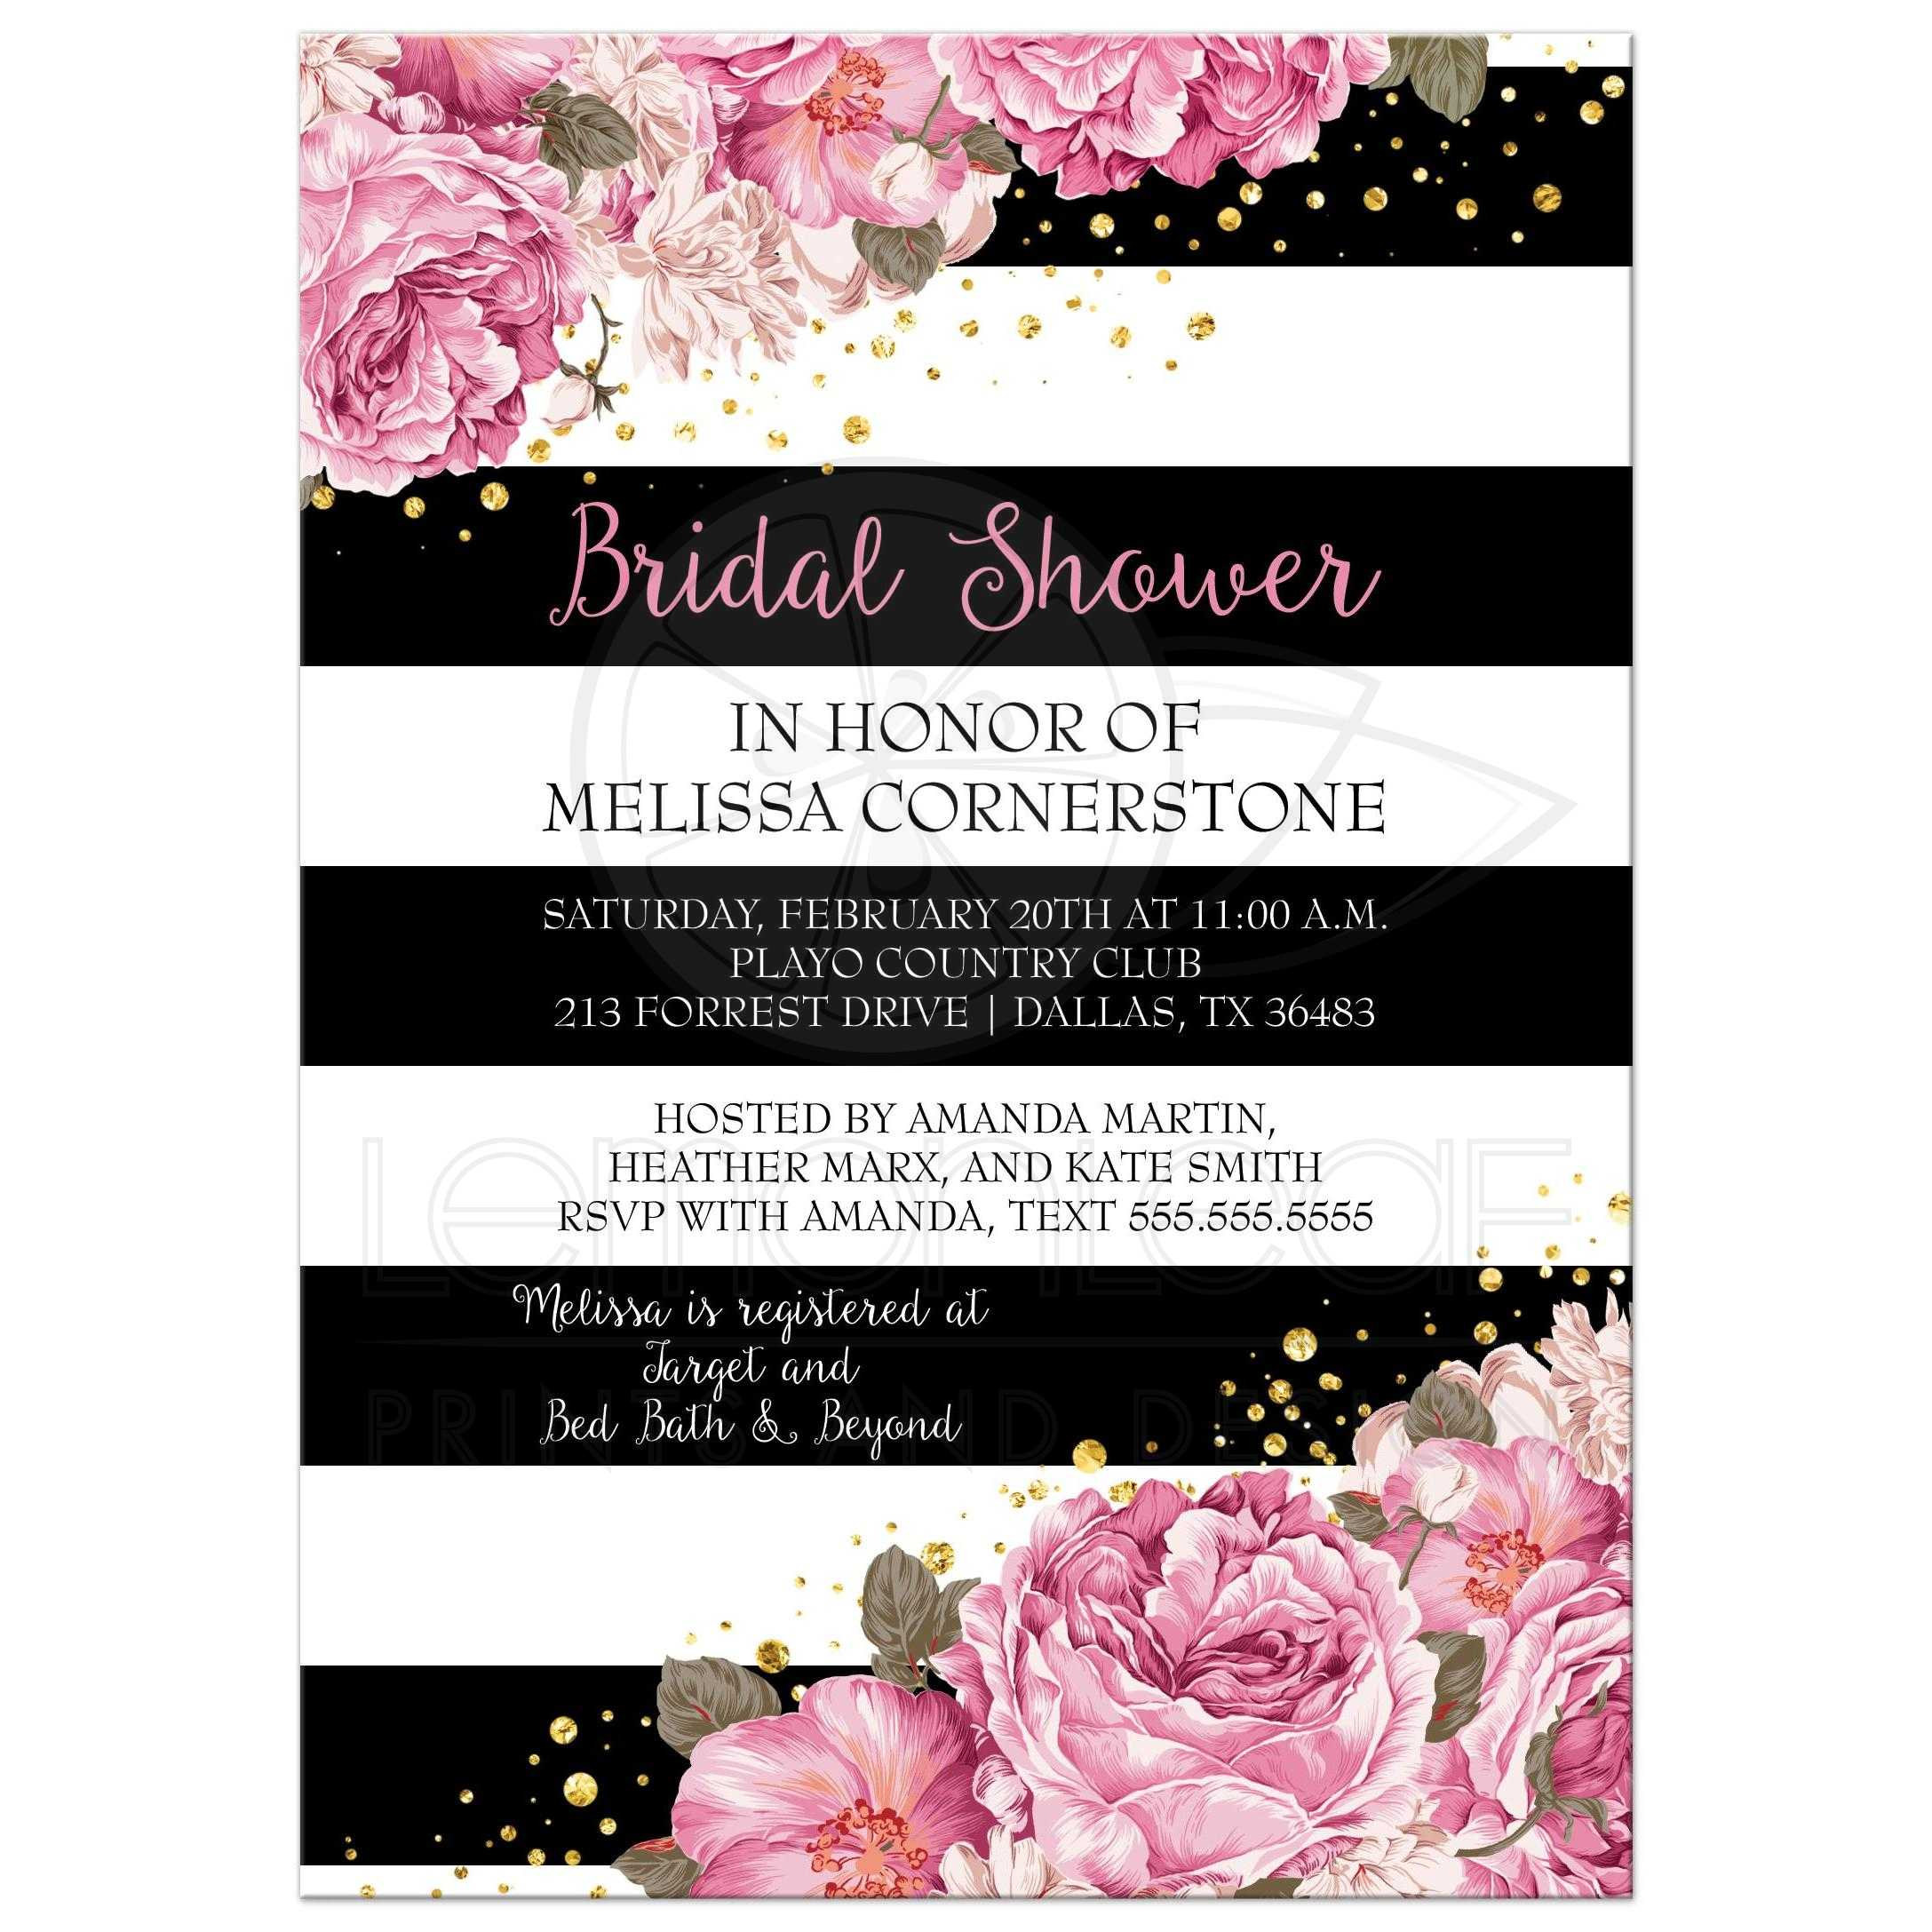 Bridal shower invitation black stripes pink flowers and gold pink gold and black floral stripes bridal shower invitation filmwisefo